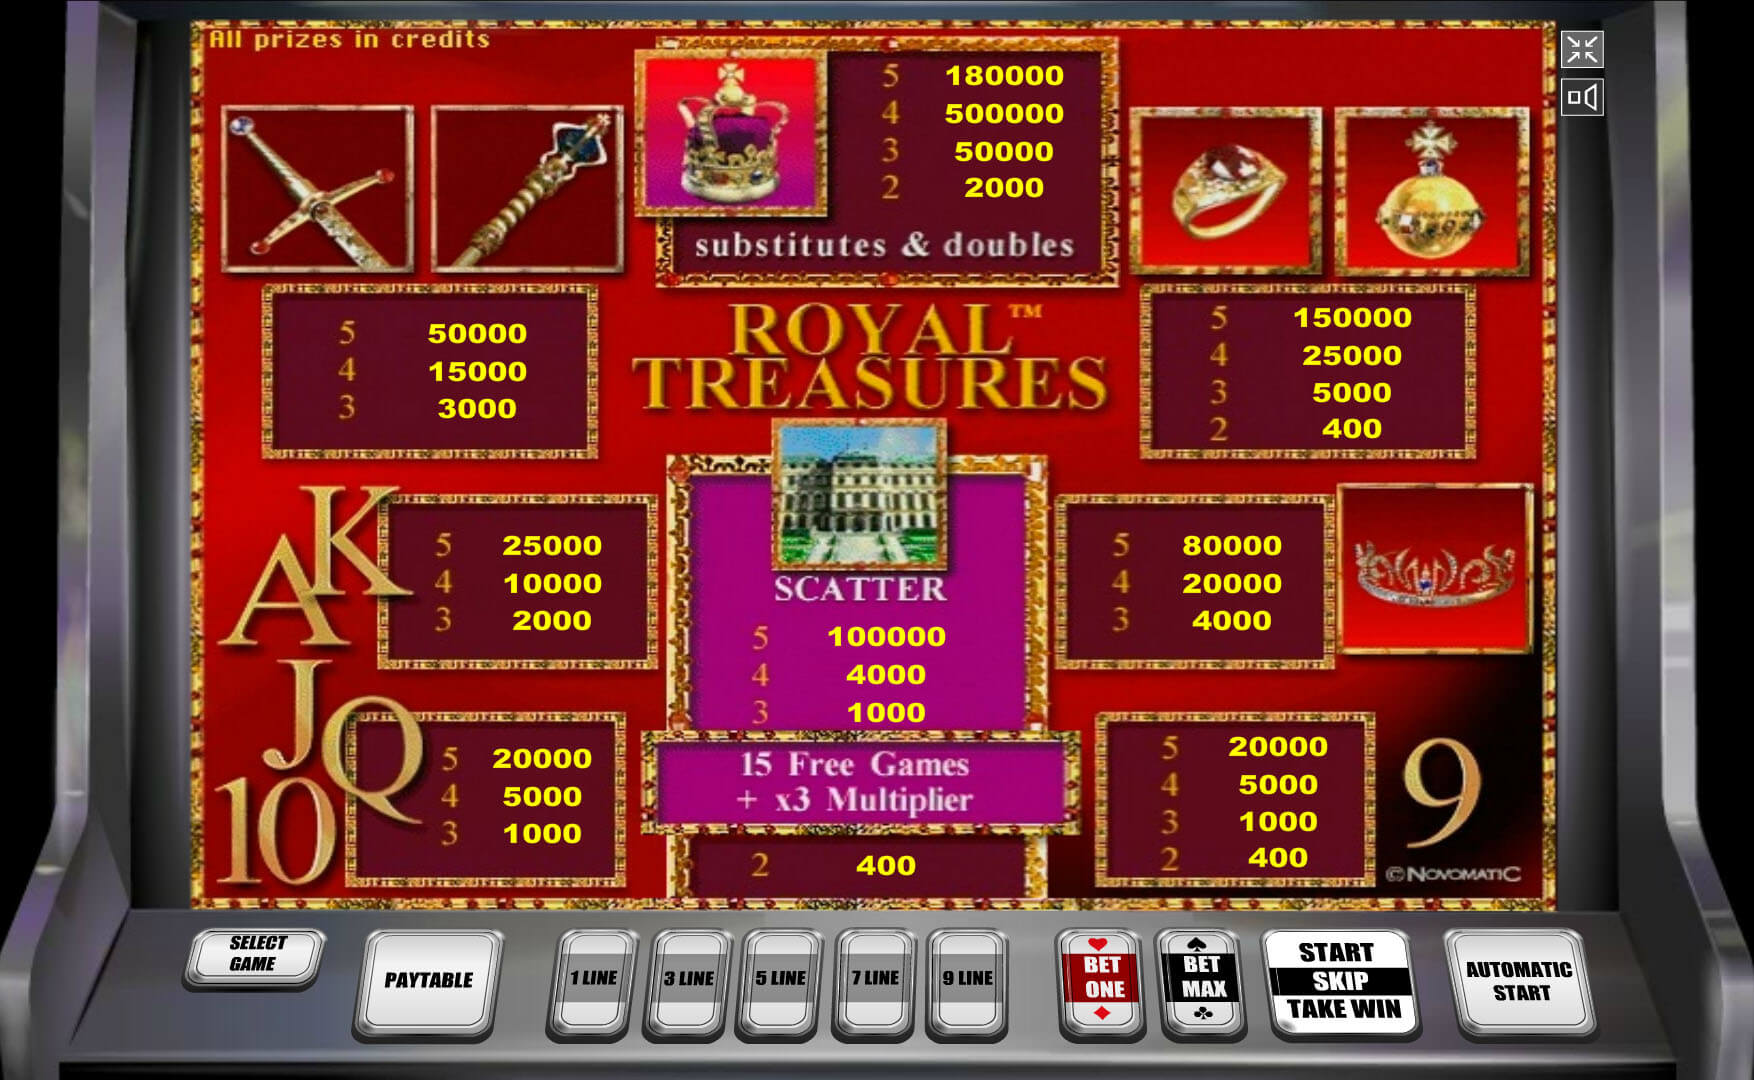 royal treasures игровой автомат онлайн информация